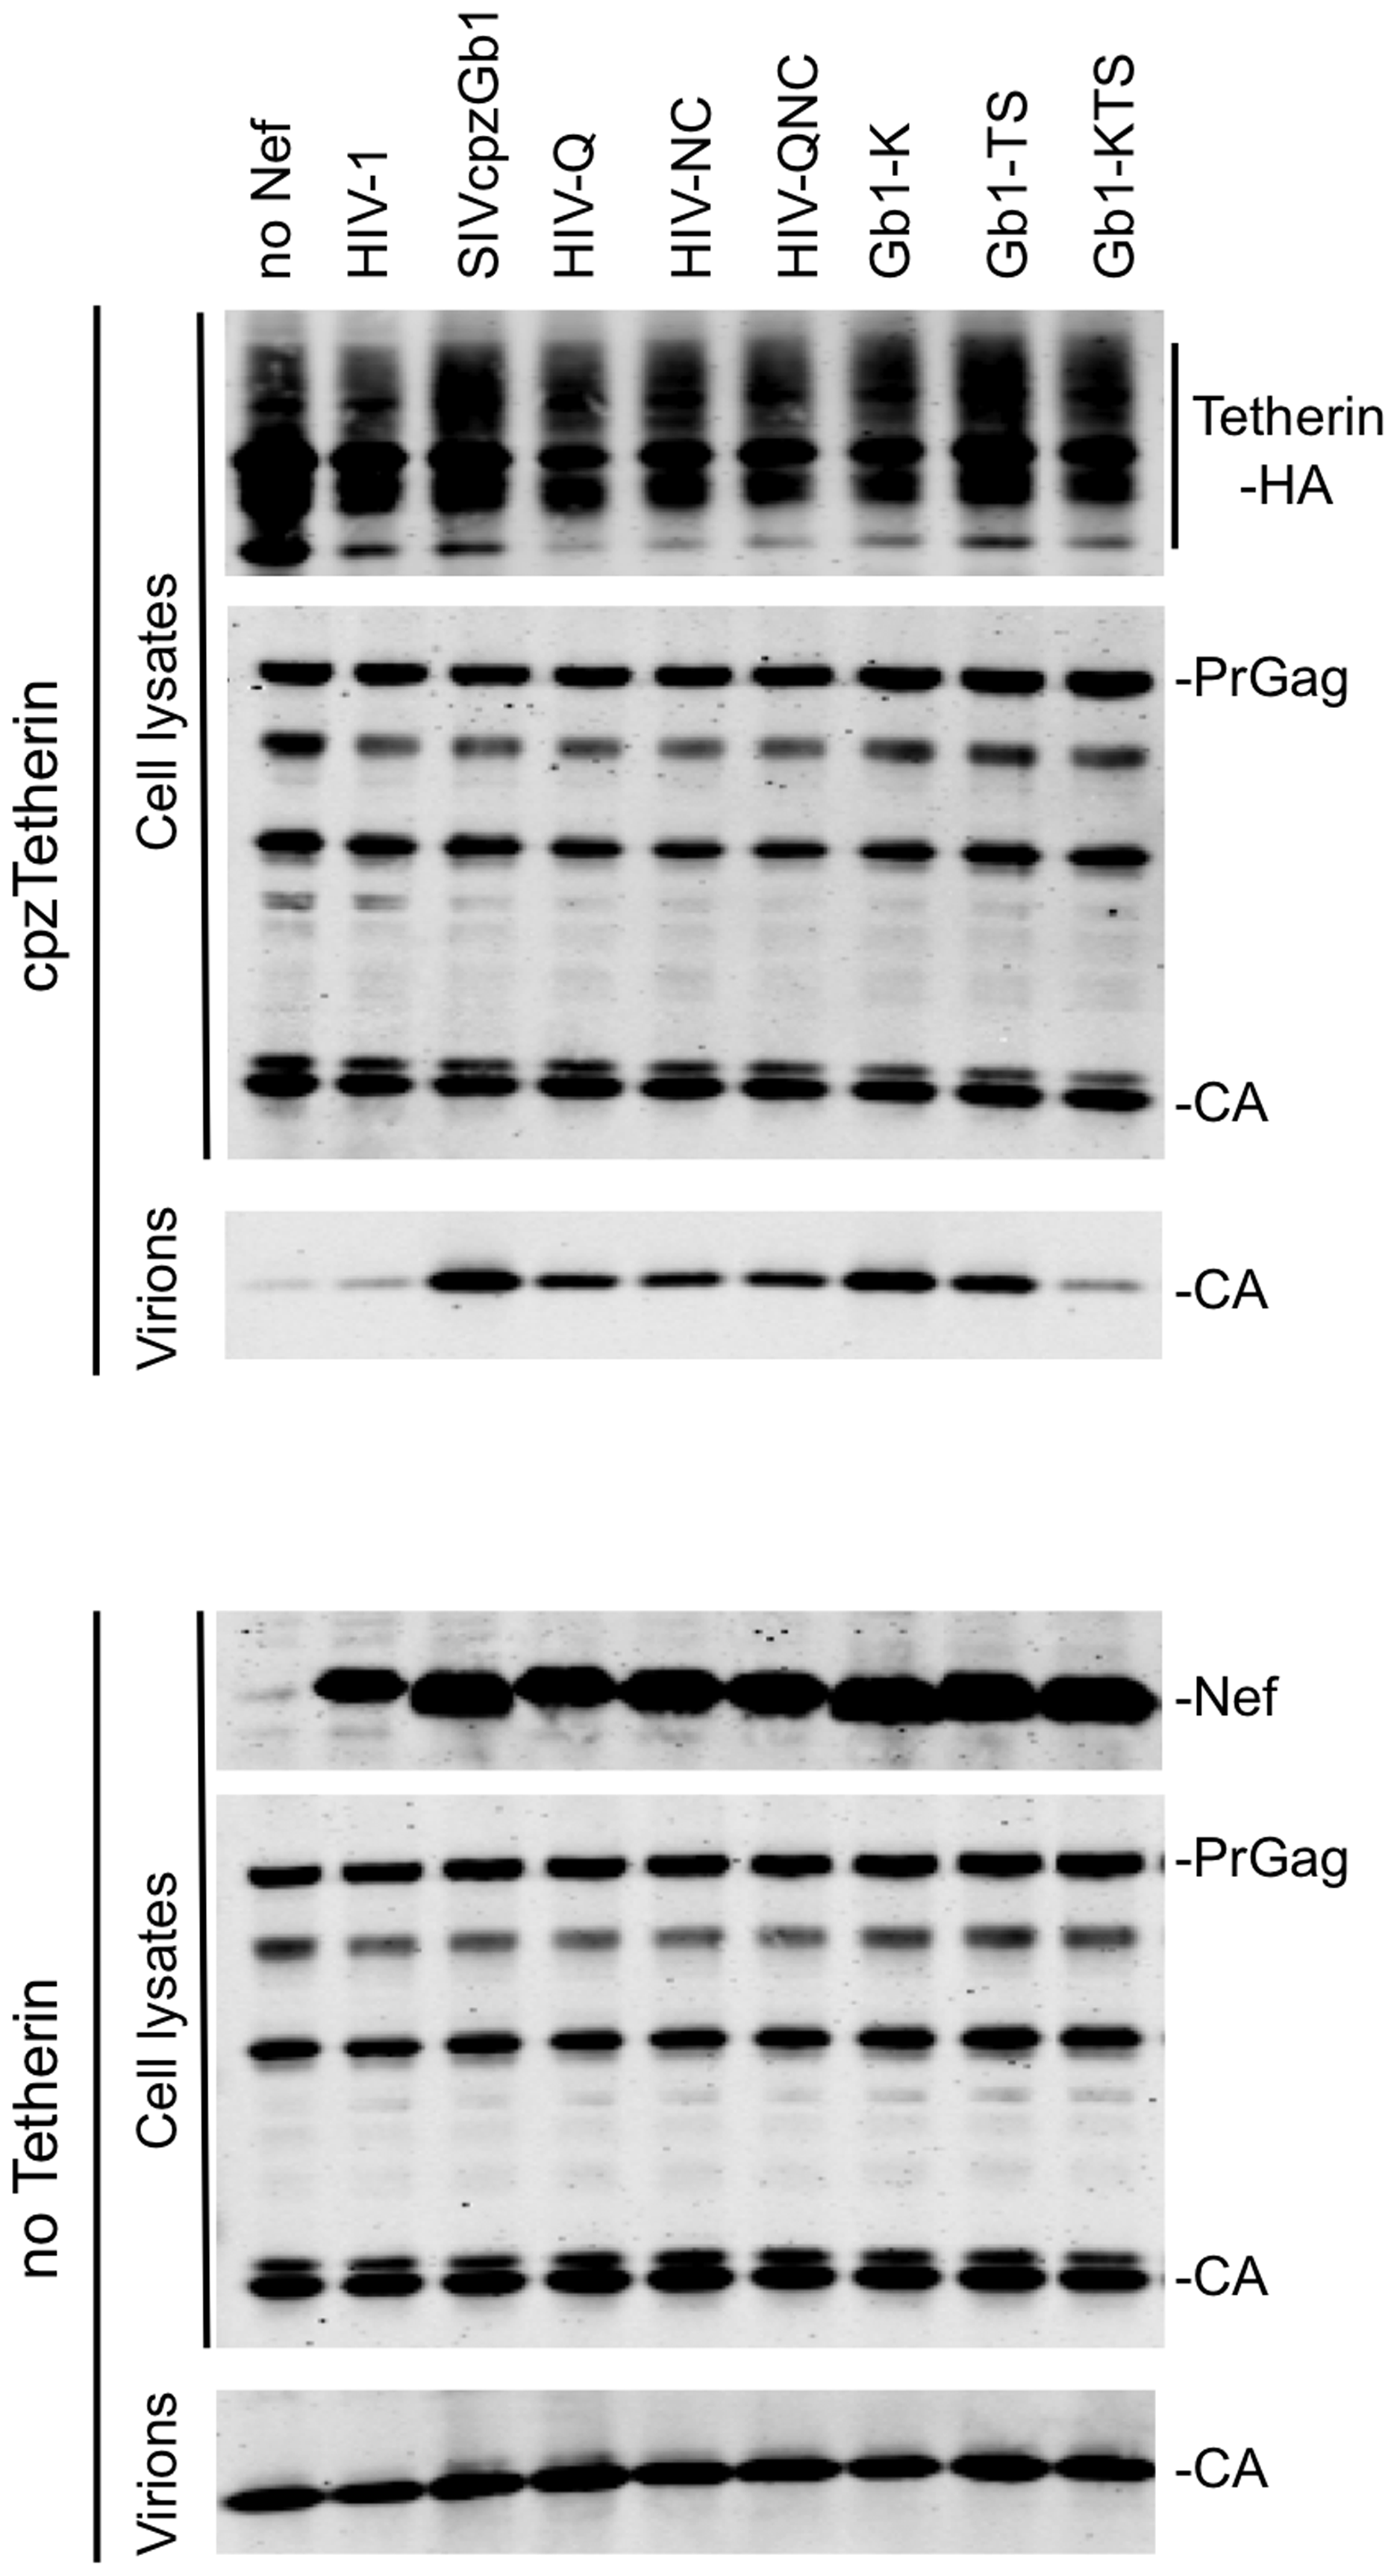 Identification of Nef amino acids important for Tetherin antagonism.